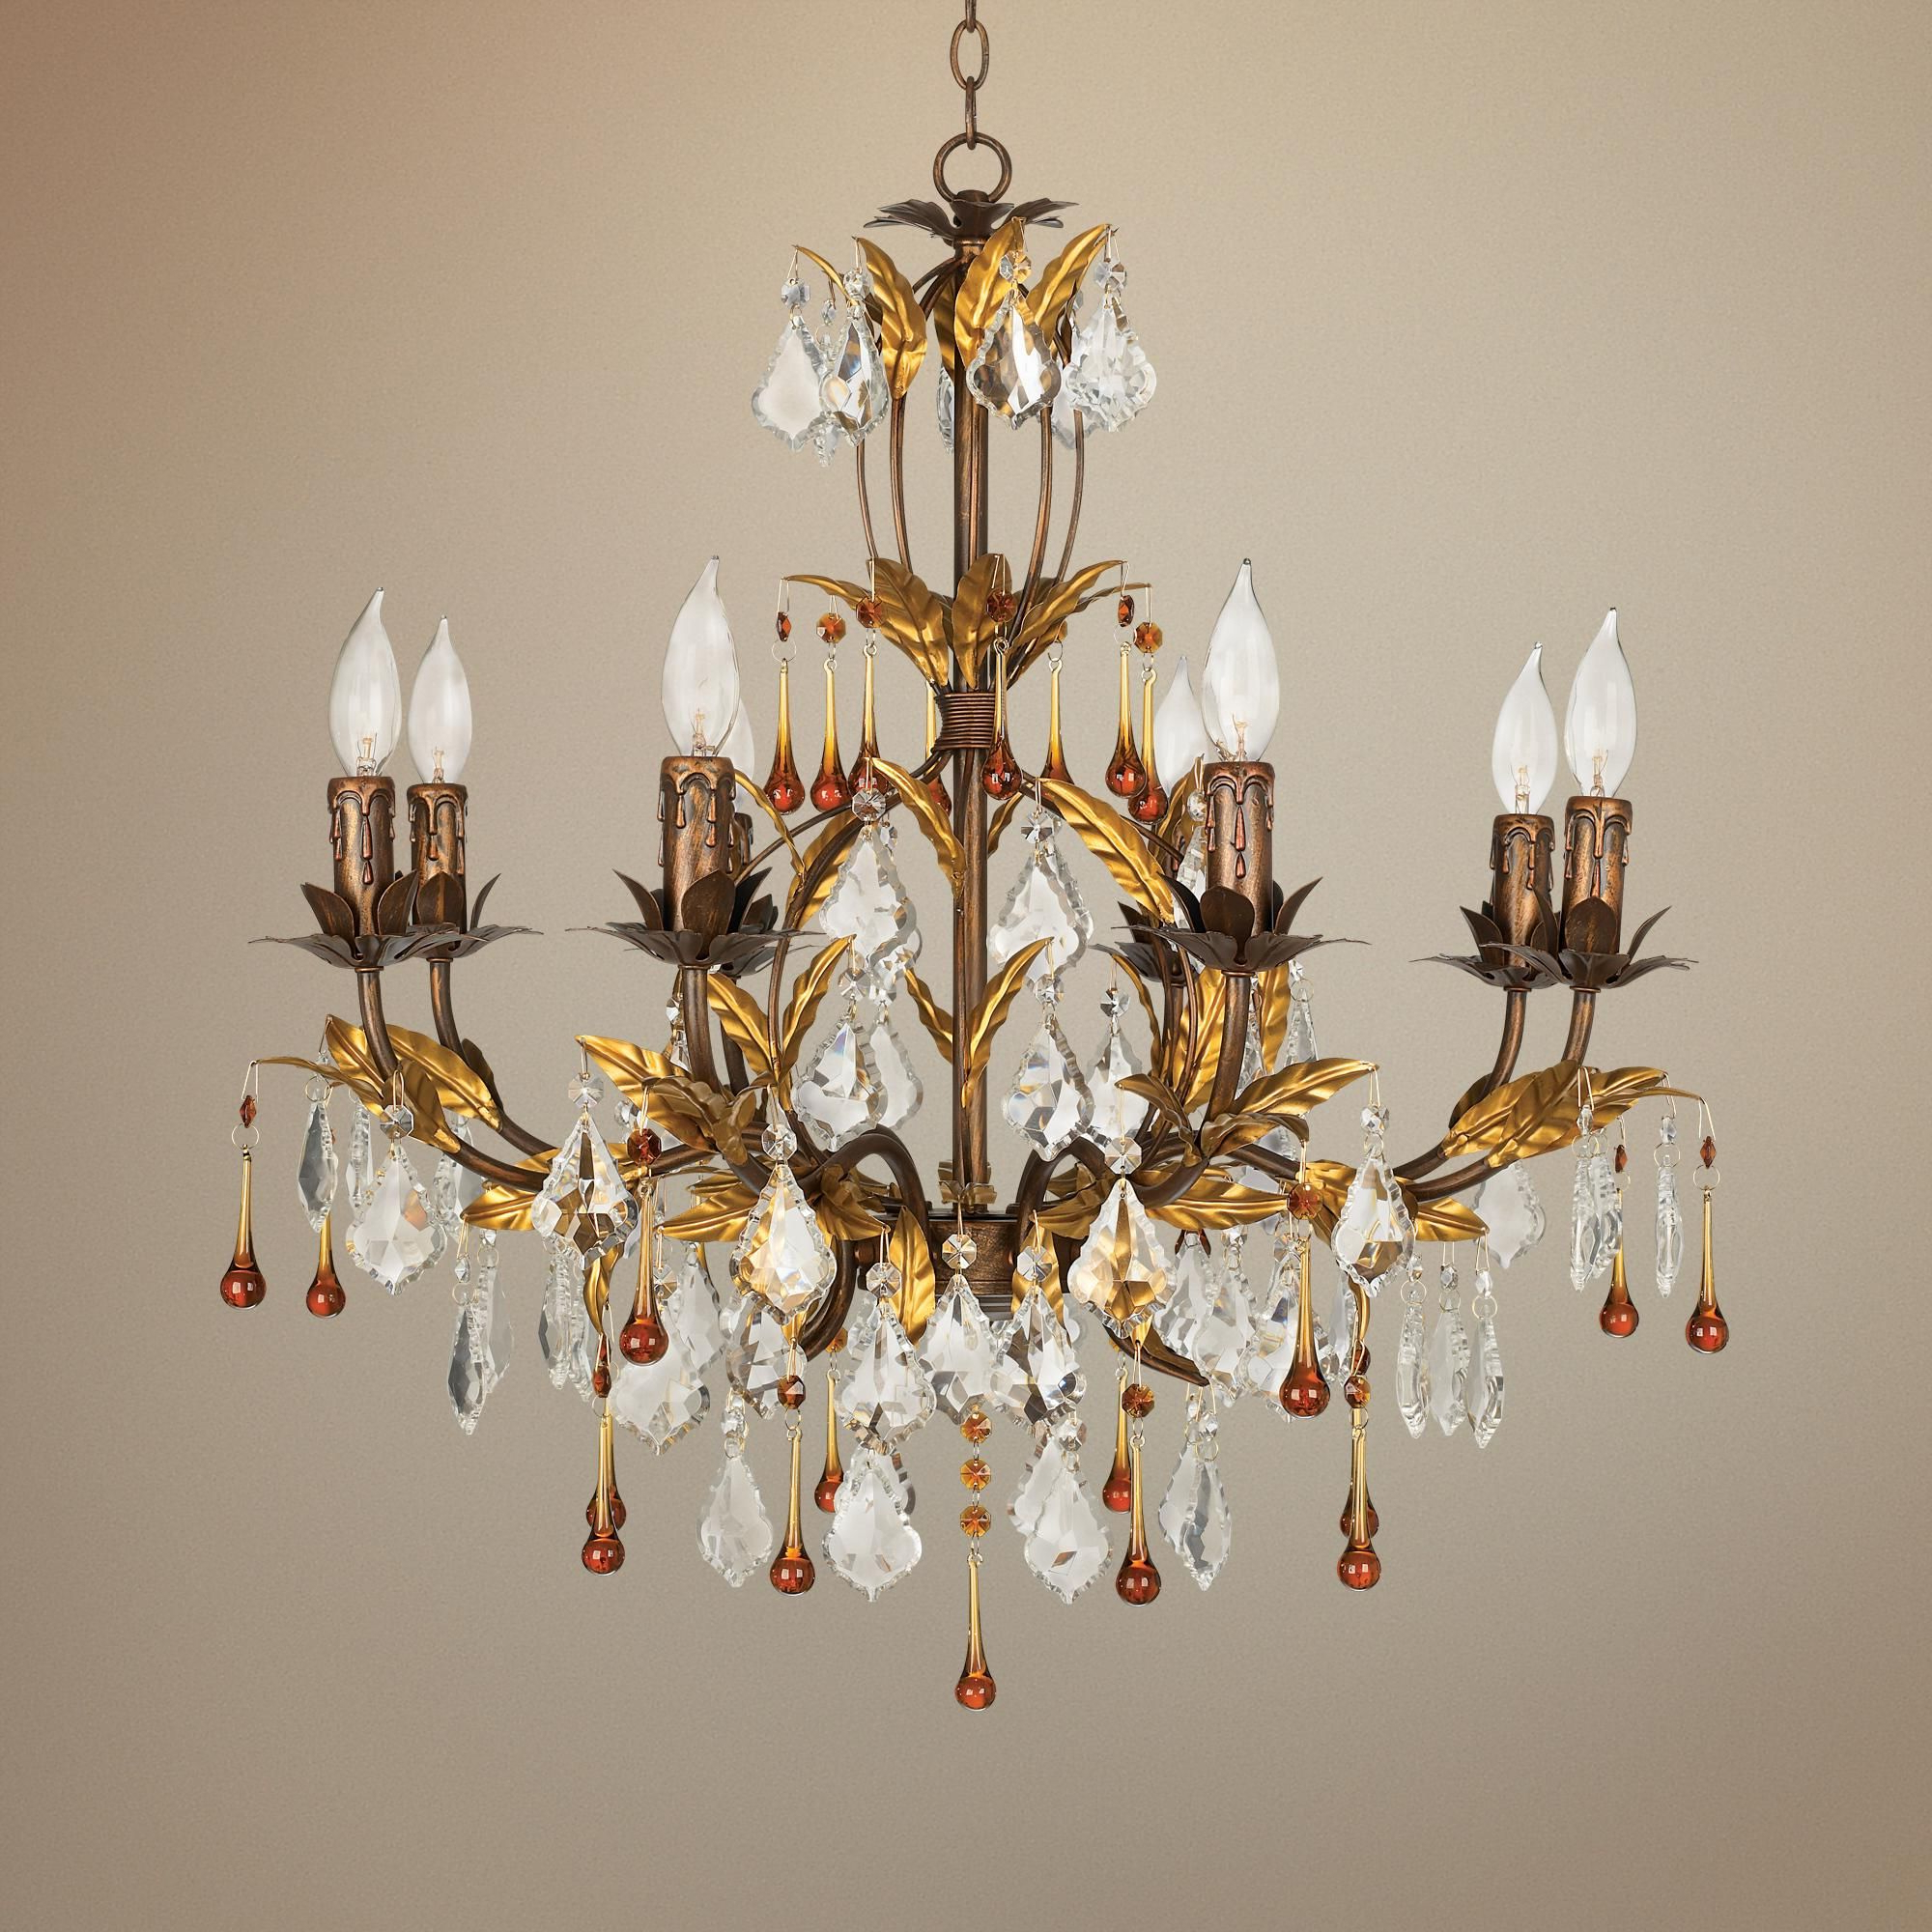 Showing Gallery Of Blanchette 5 Light Candle Style Chandeliers View 20 Of 20 Photos